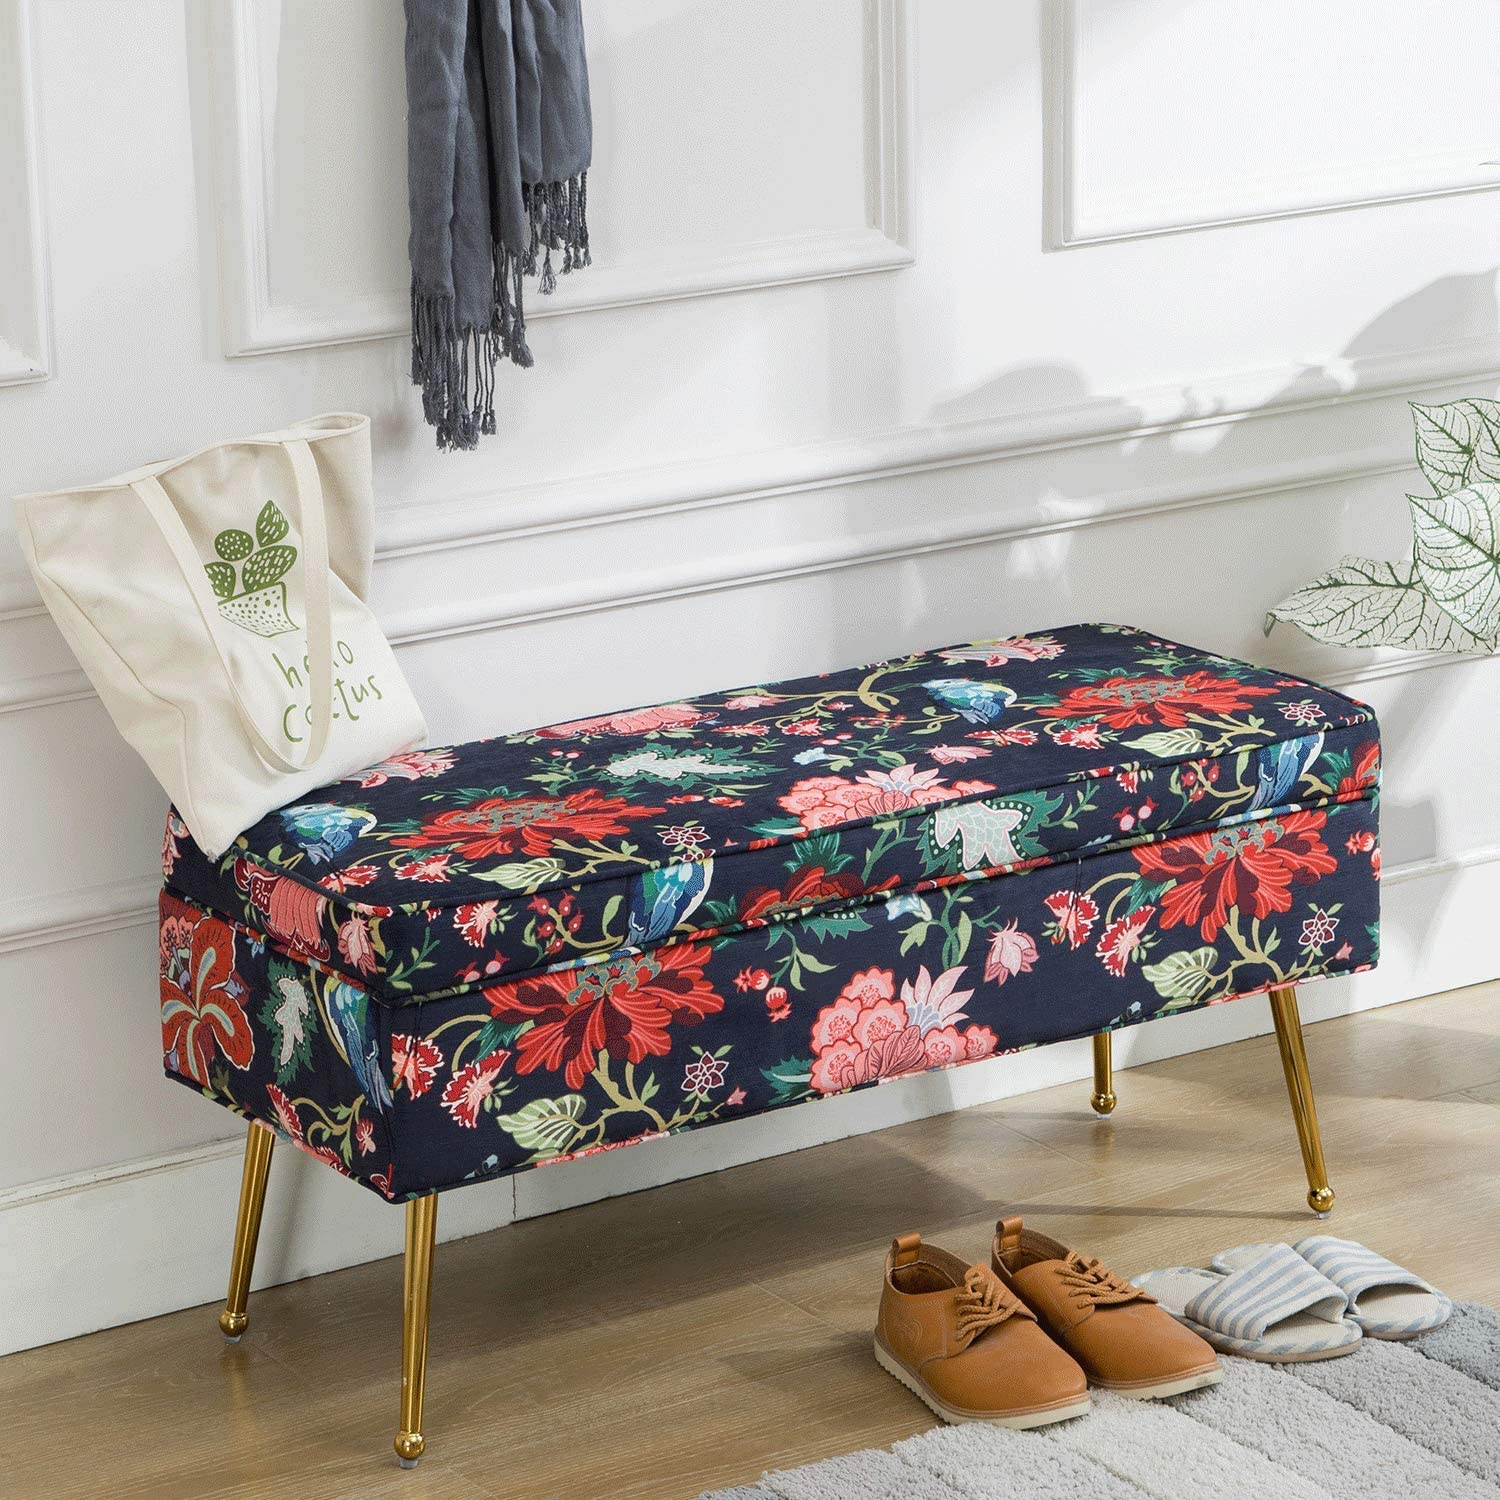 Amazon Com Zh4you Mid Century Collapsible Storage Bedroom Benches Rectangular Velvet Accent Entryway Bench With Gold Plating Metal Legs Retro Floral Print Red Flower Kitchen Dining